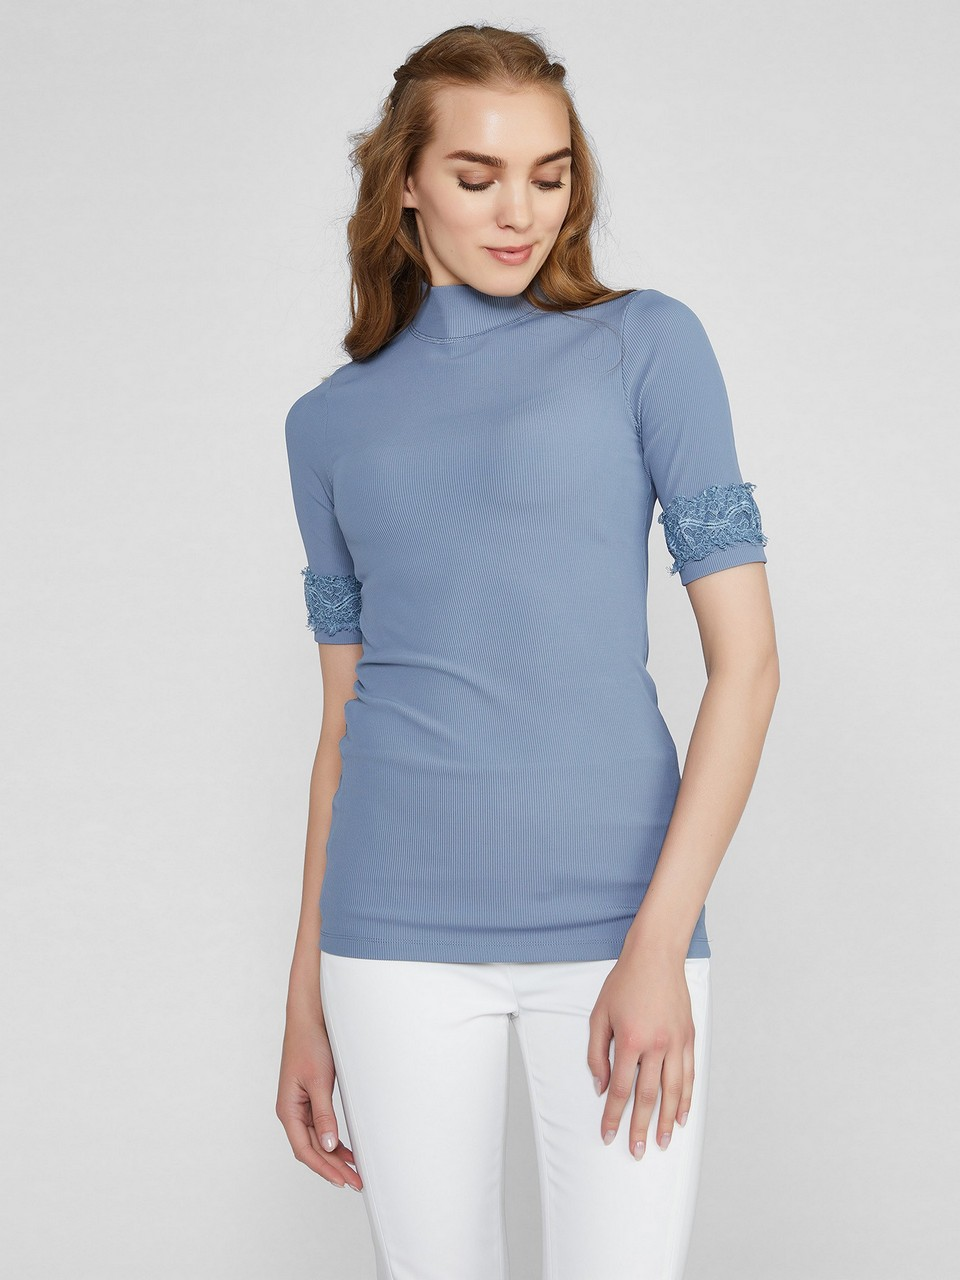 Turtleneck Short Sleeve Blouse With Lace Details On The Arm